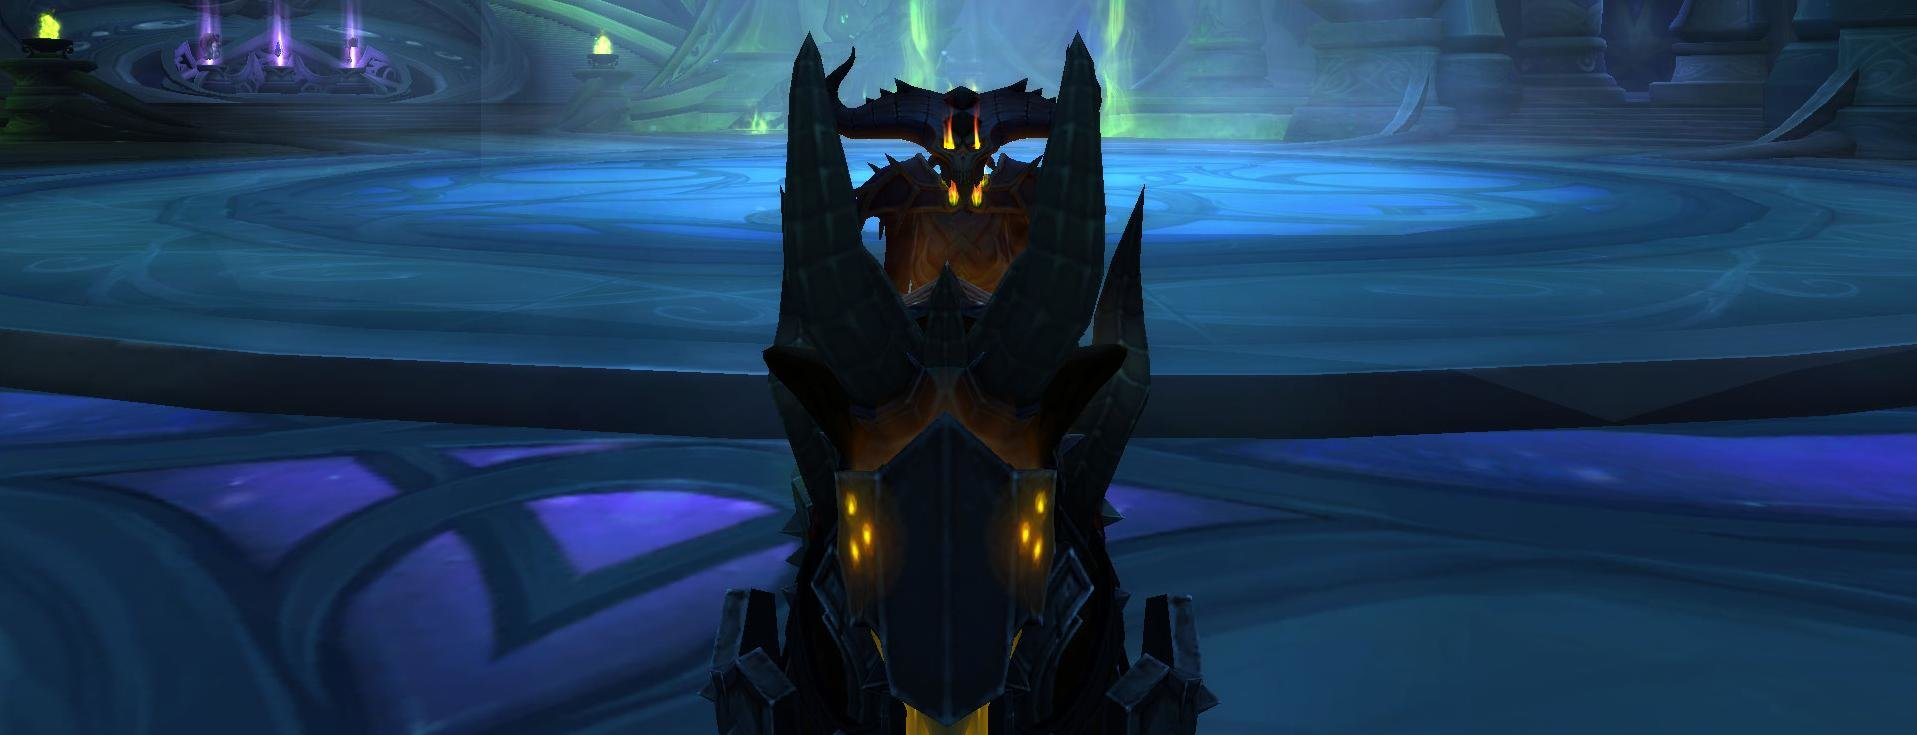 Patch 7 2 Warlock Class Mount News Icy Veins All available tints were included in the video. patch 7 2 warlock class mount news